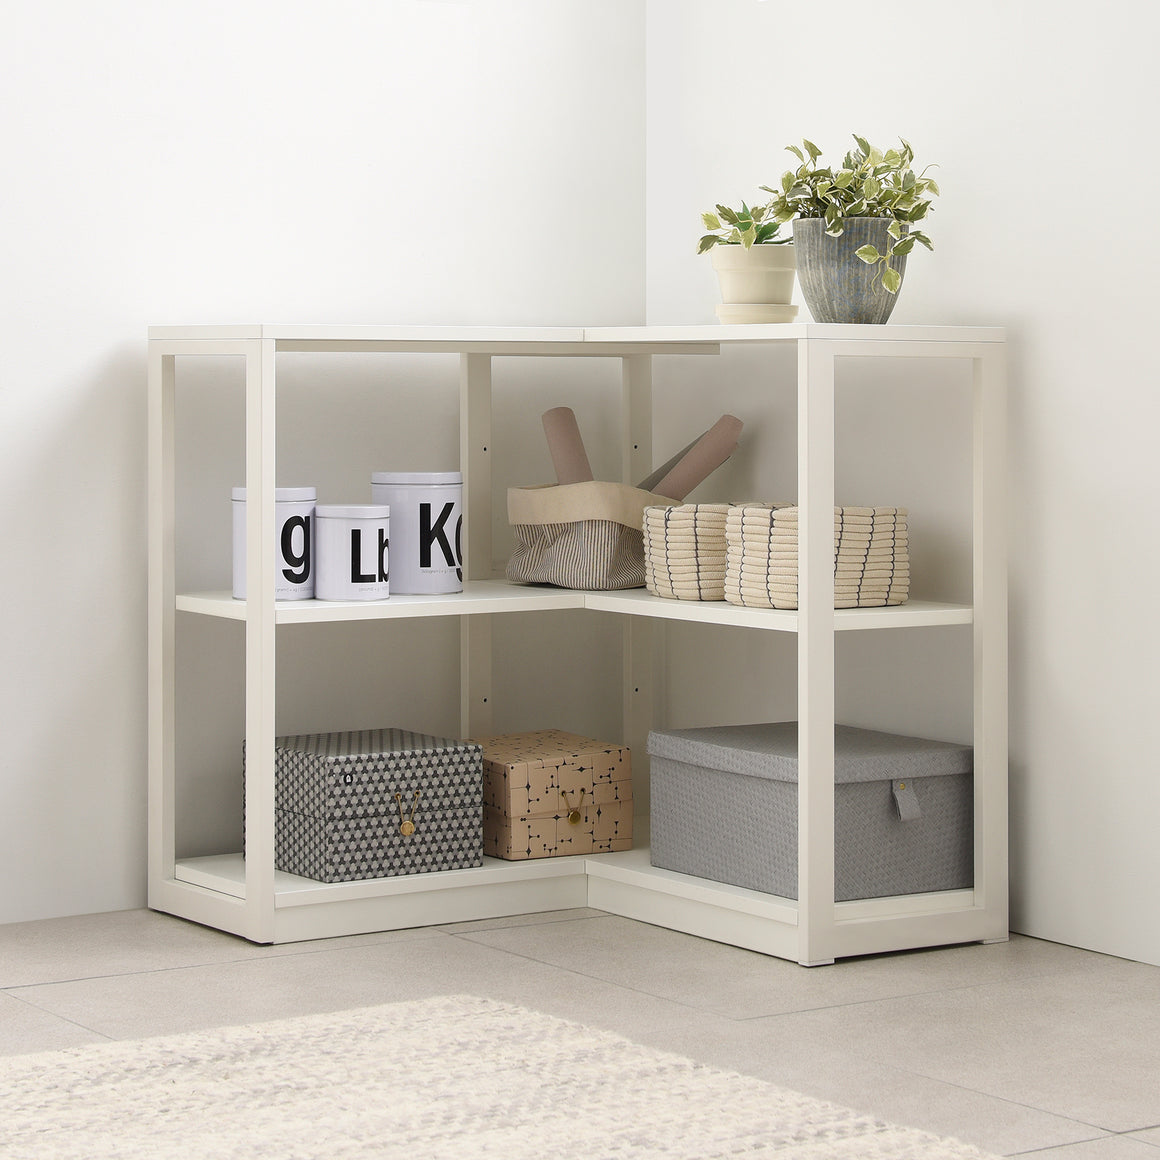 Module+ 2- Level Corner Shelf 800